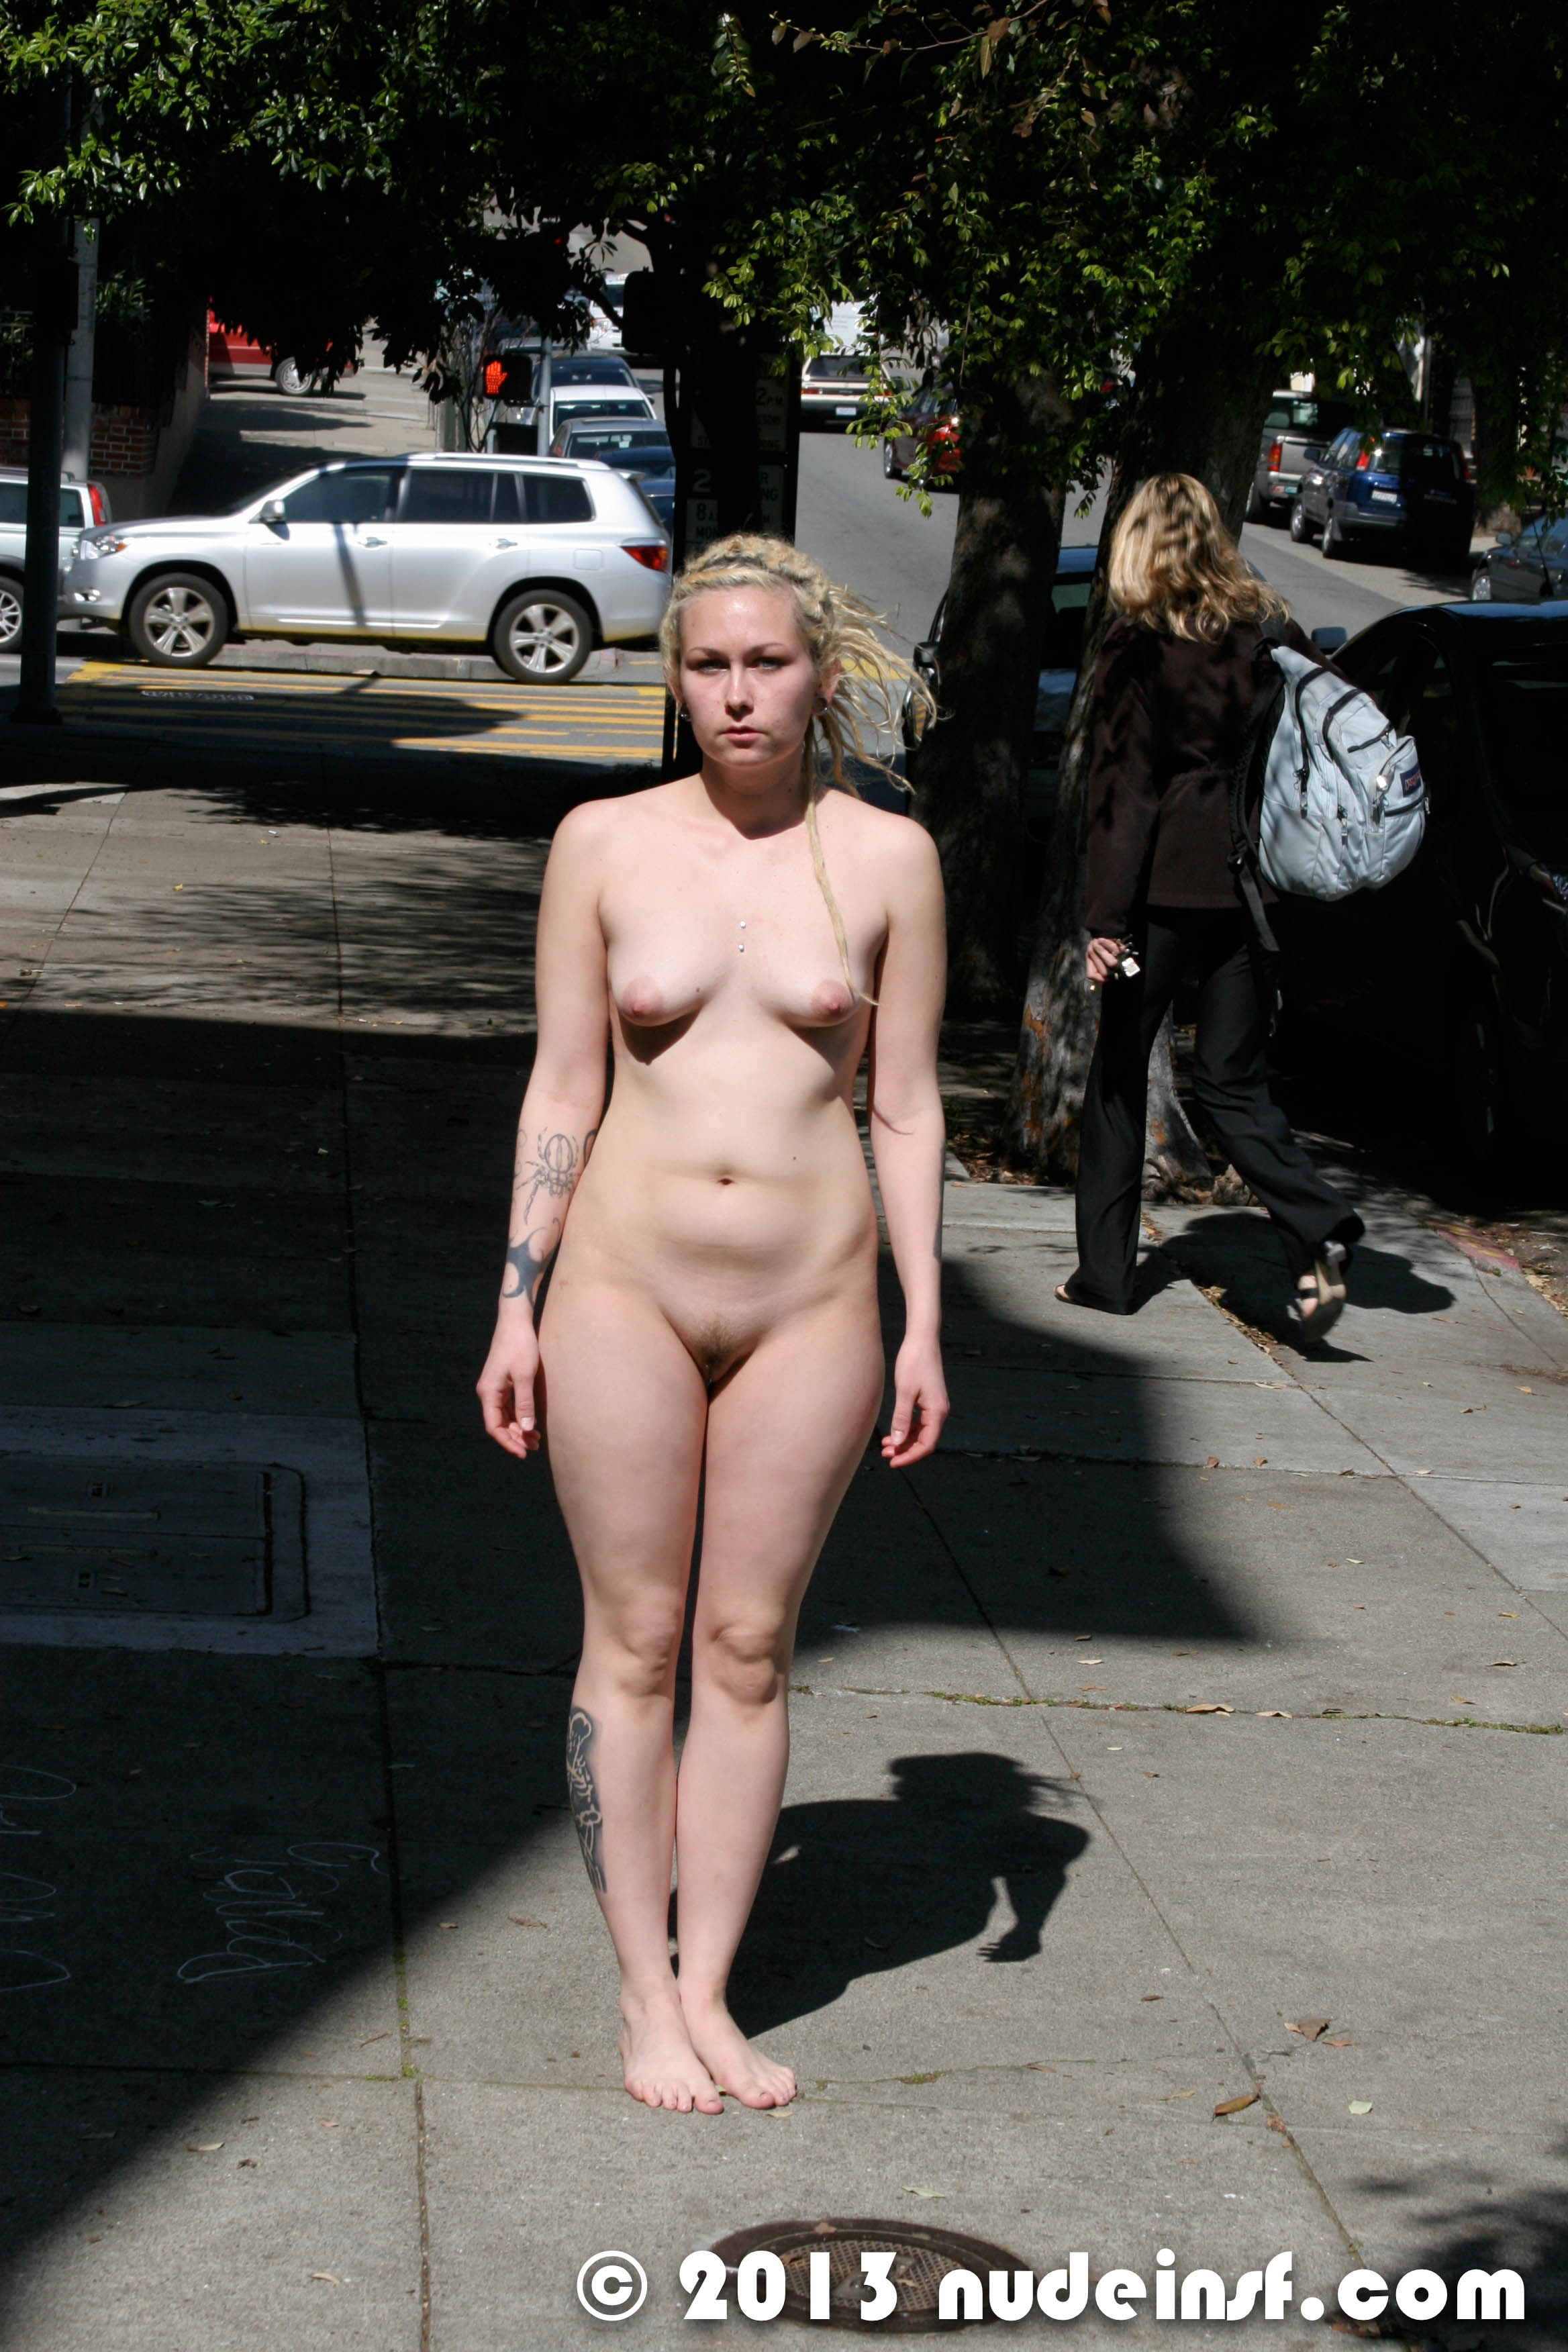 San francisco nude shows